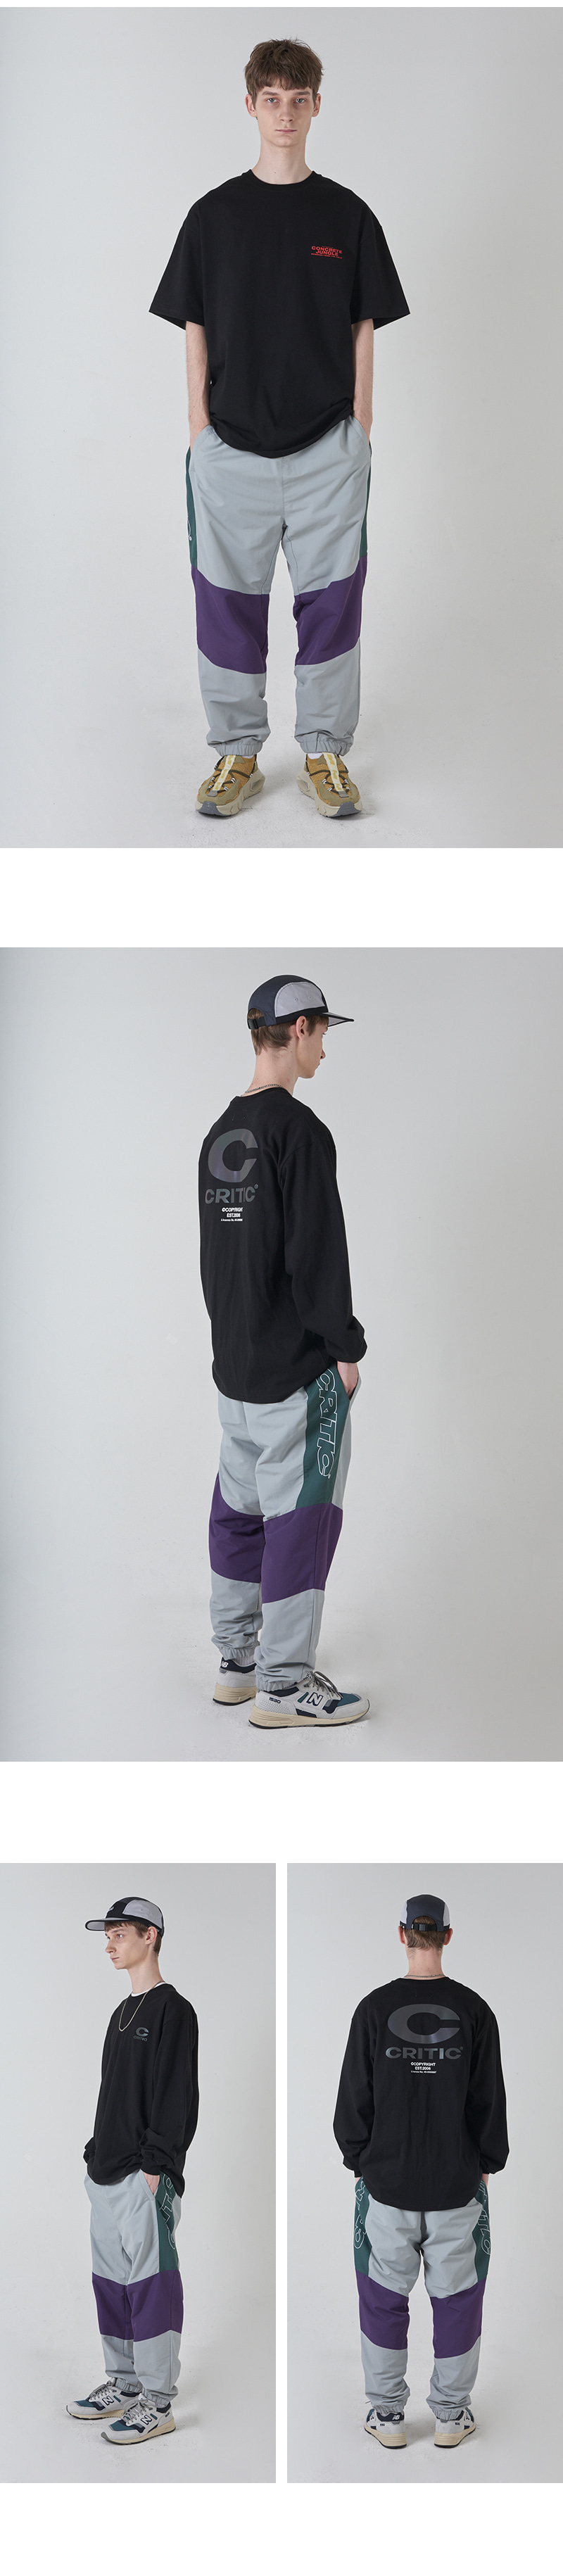 SIDE LOGO TRACK PANTS(GRAY)_CTONAPT01UC0